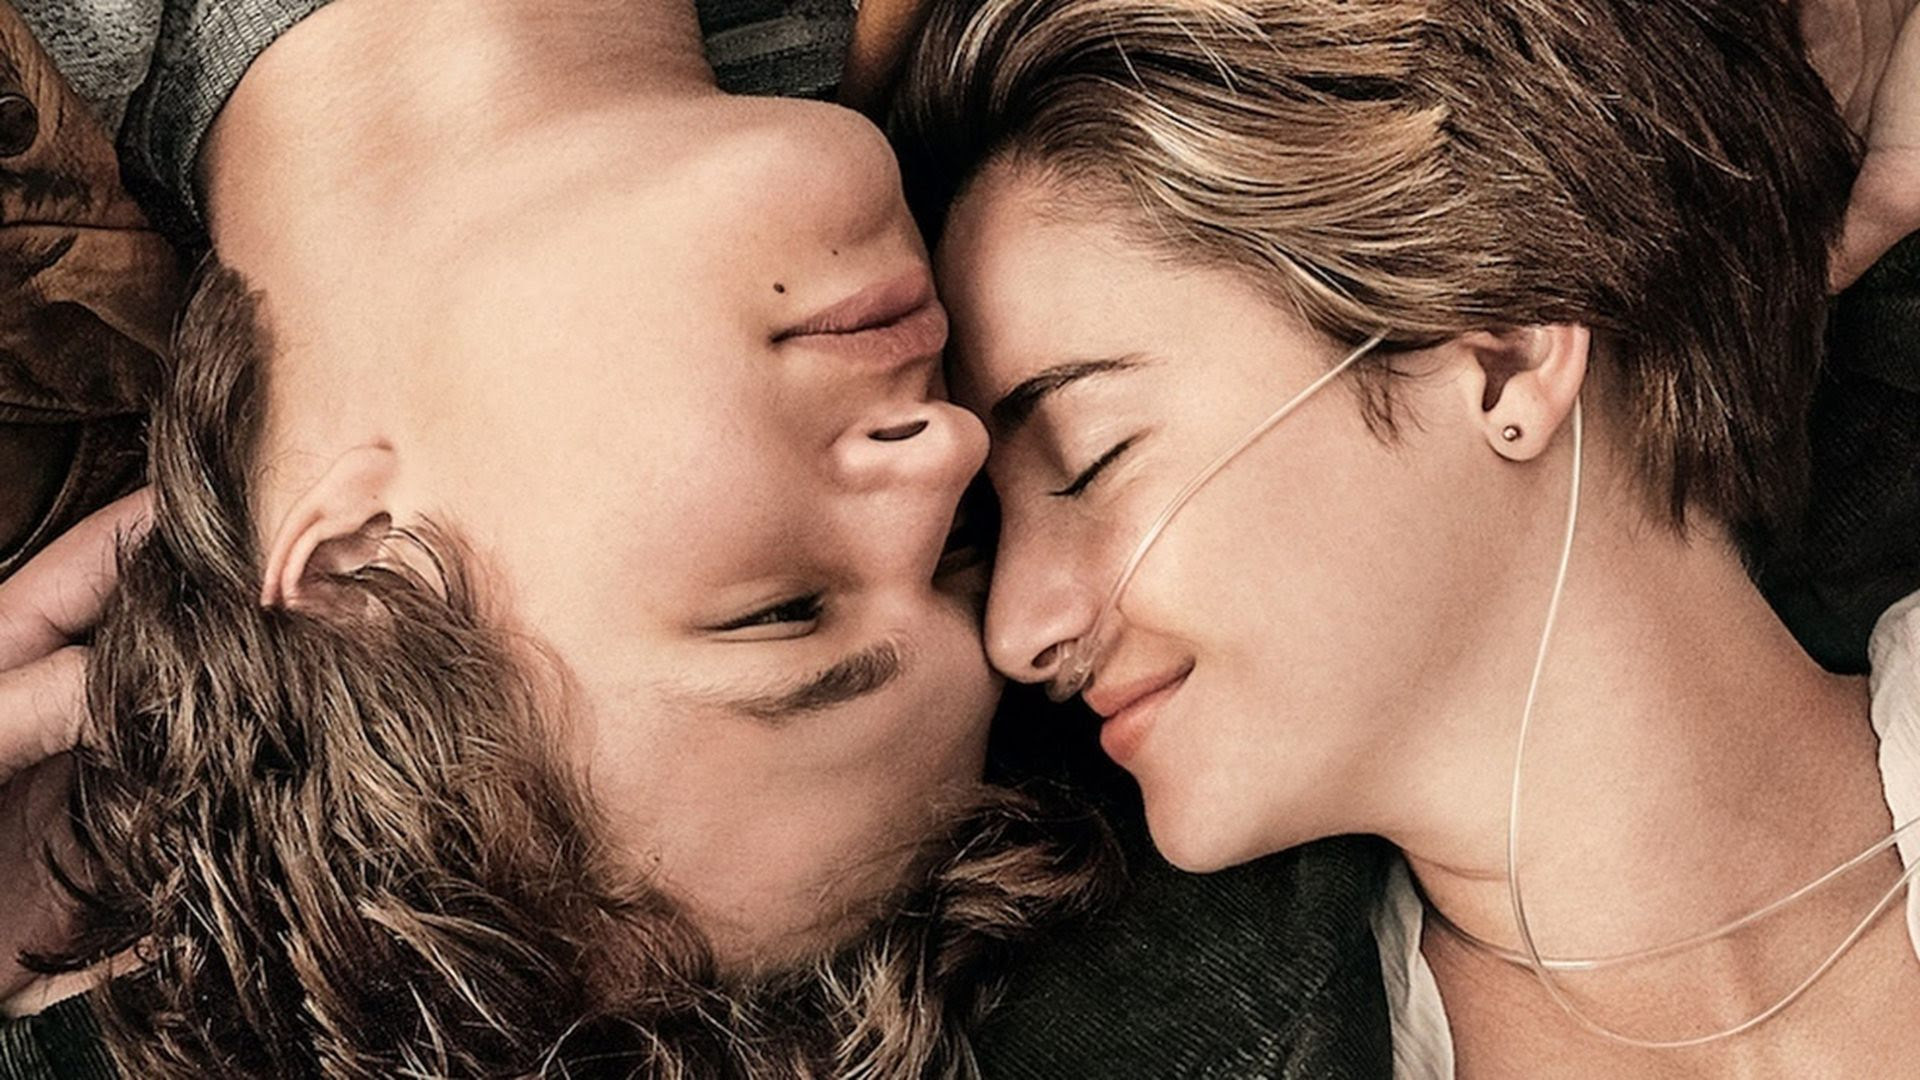 Hazel And Augustus The Fault In Our Stars Wallpaper 38357440